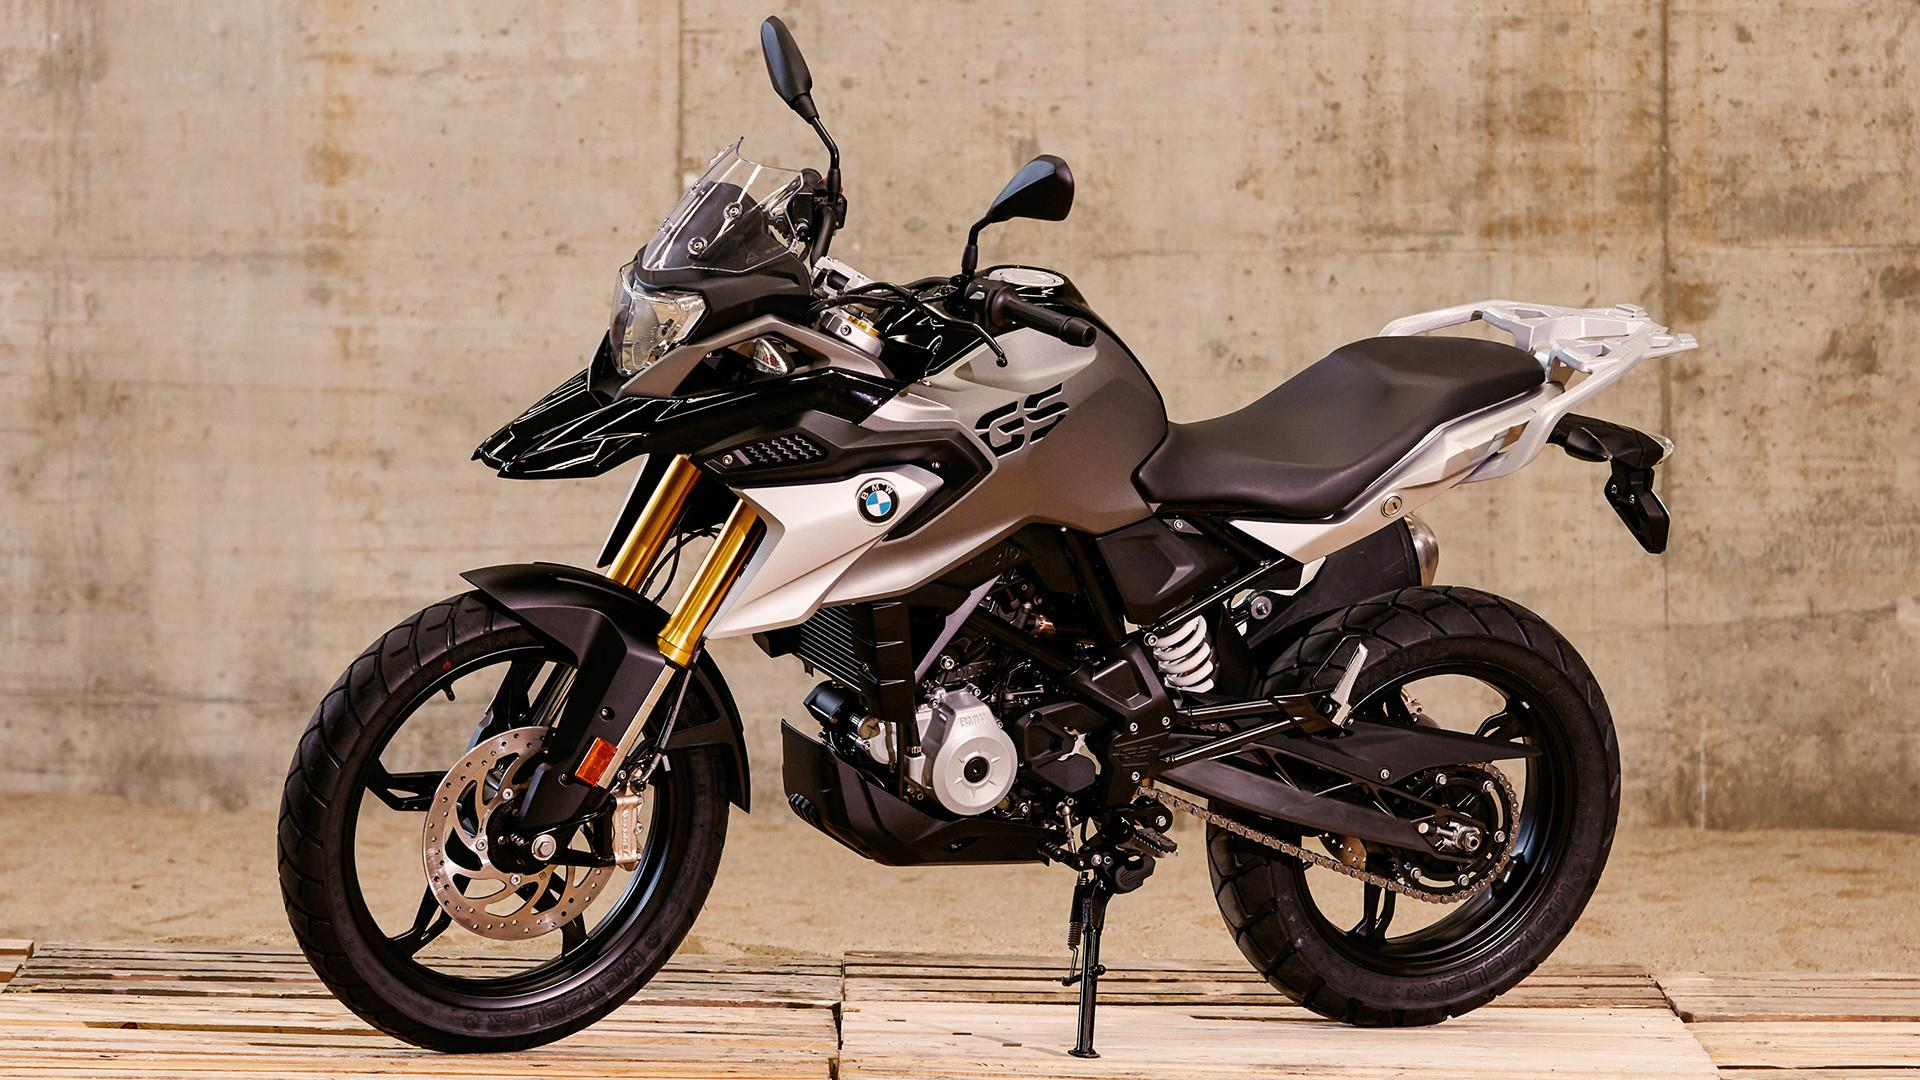 BMW unveils new G310 GS at EICMA 2016